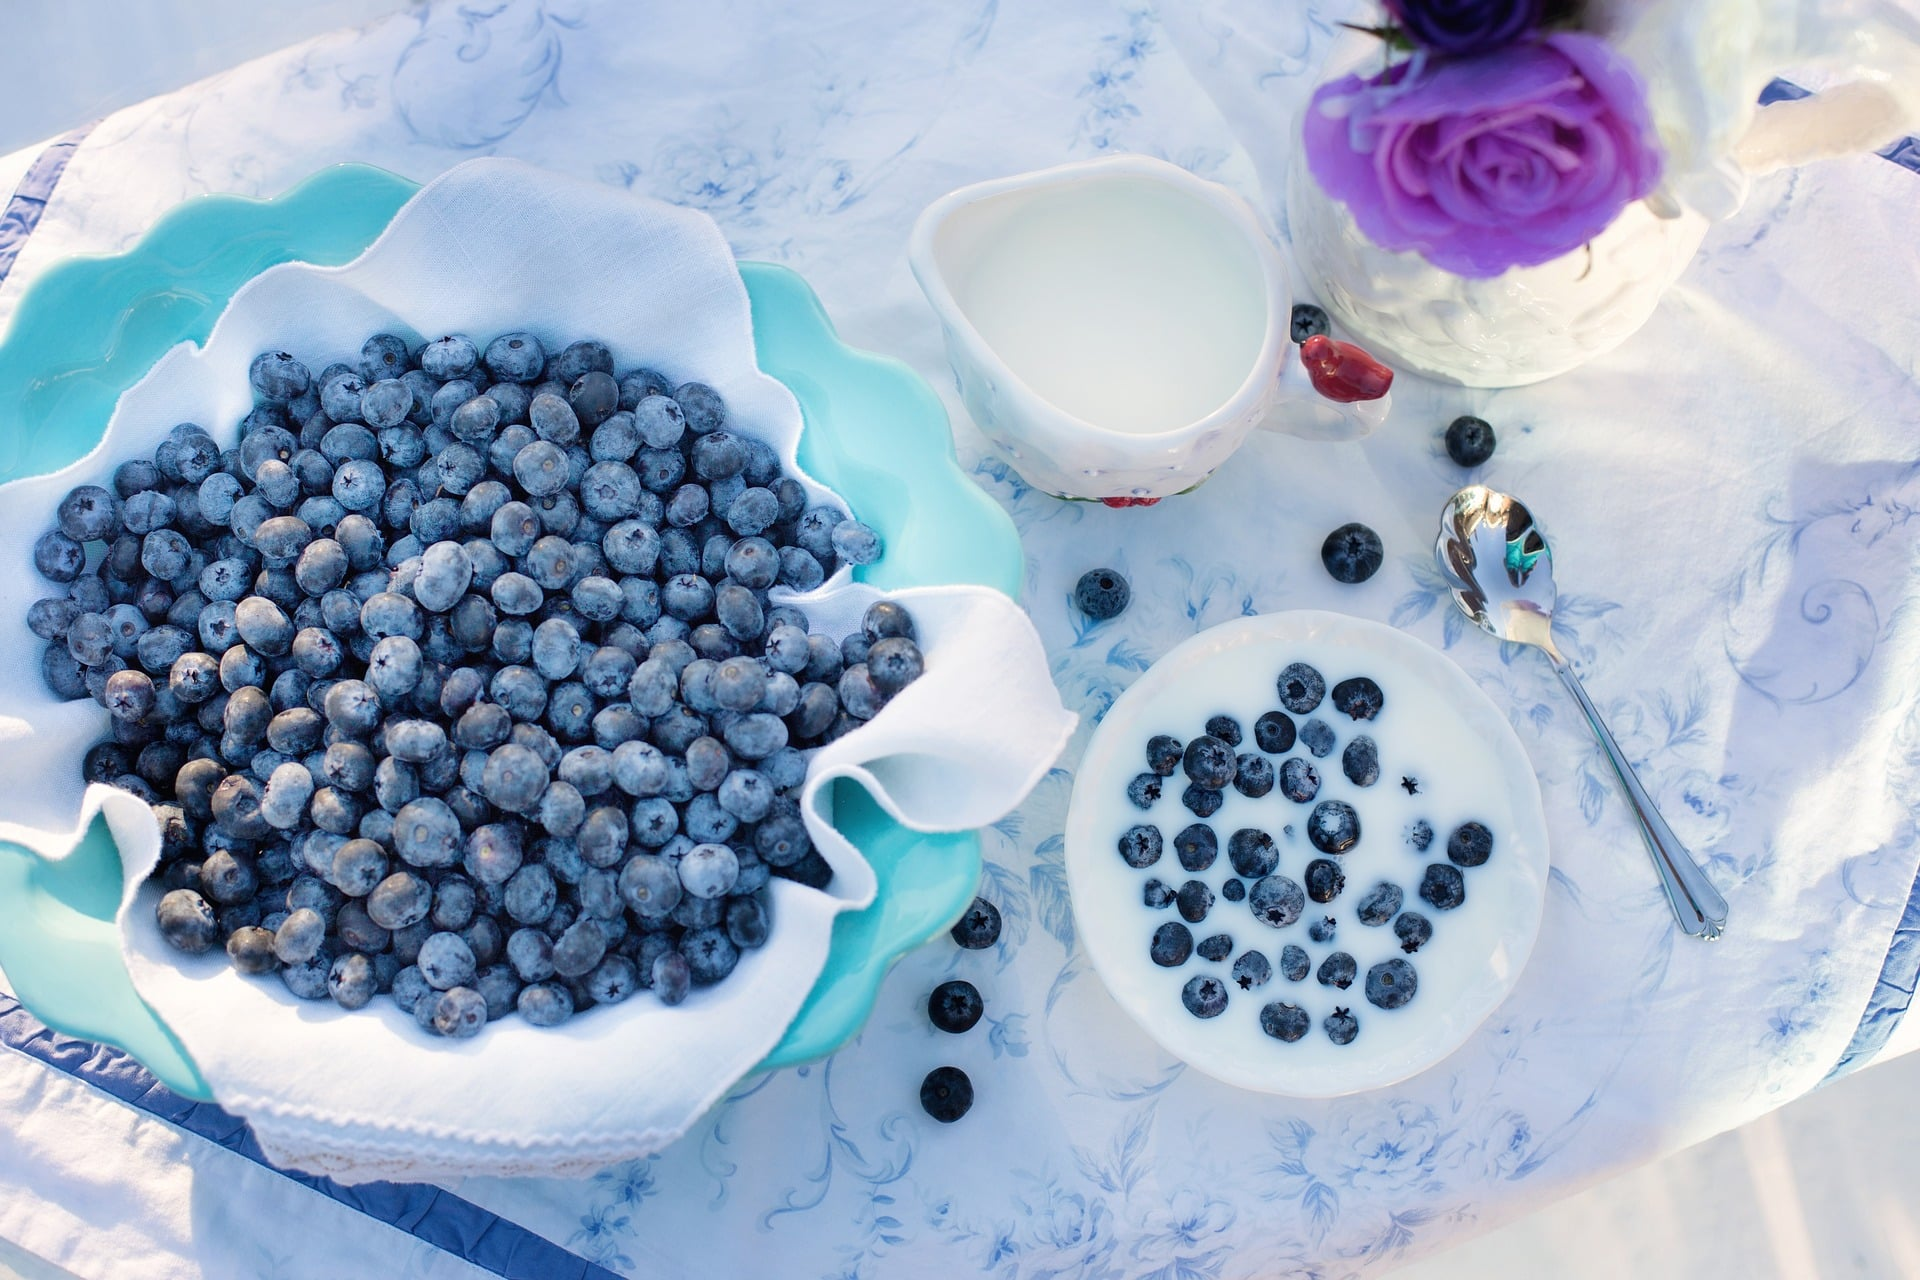 Foods for hypothyroidism - berries